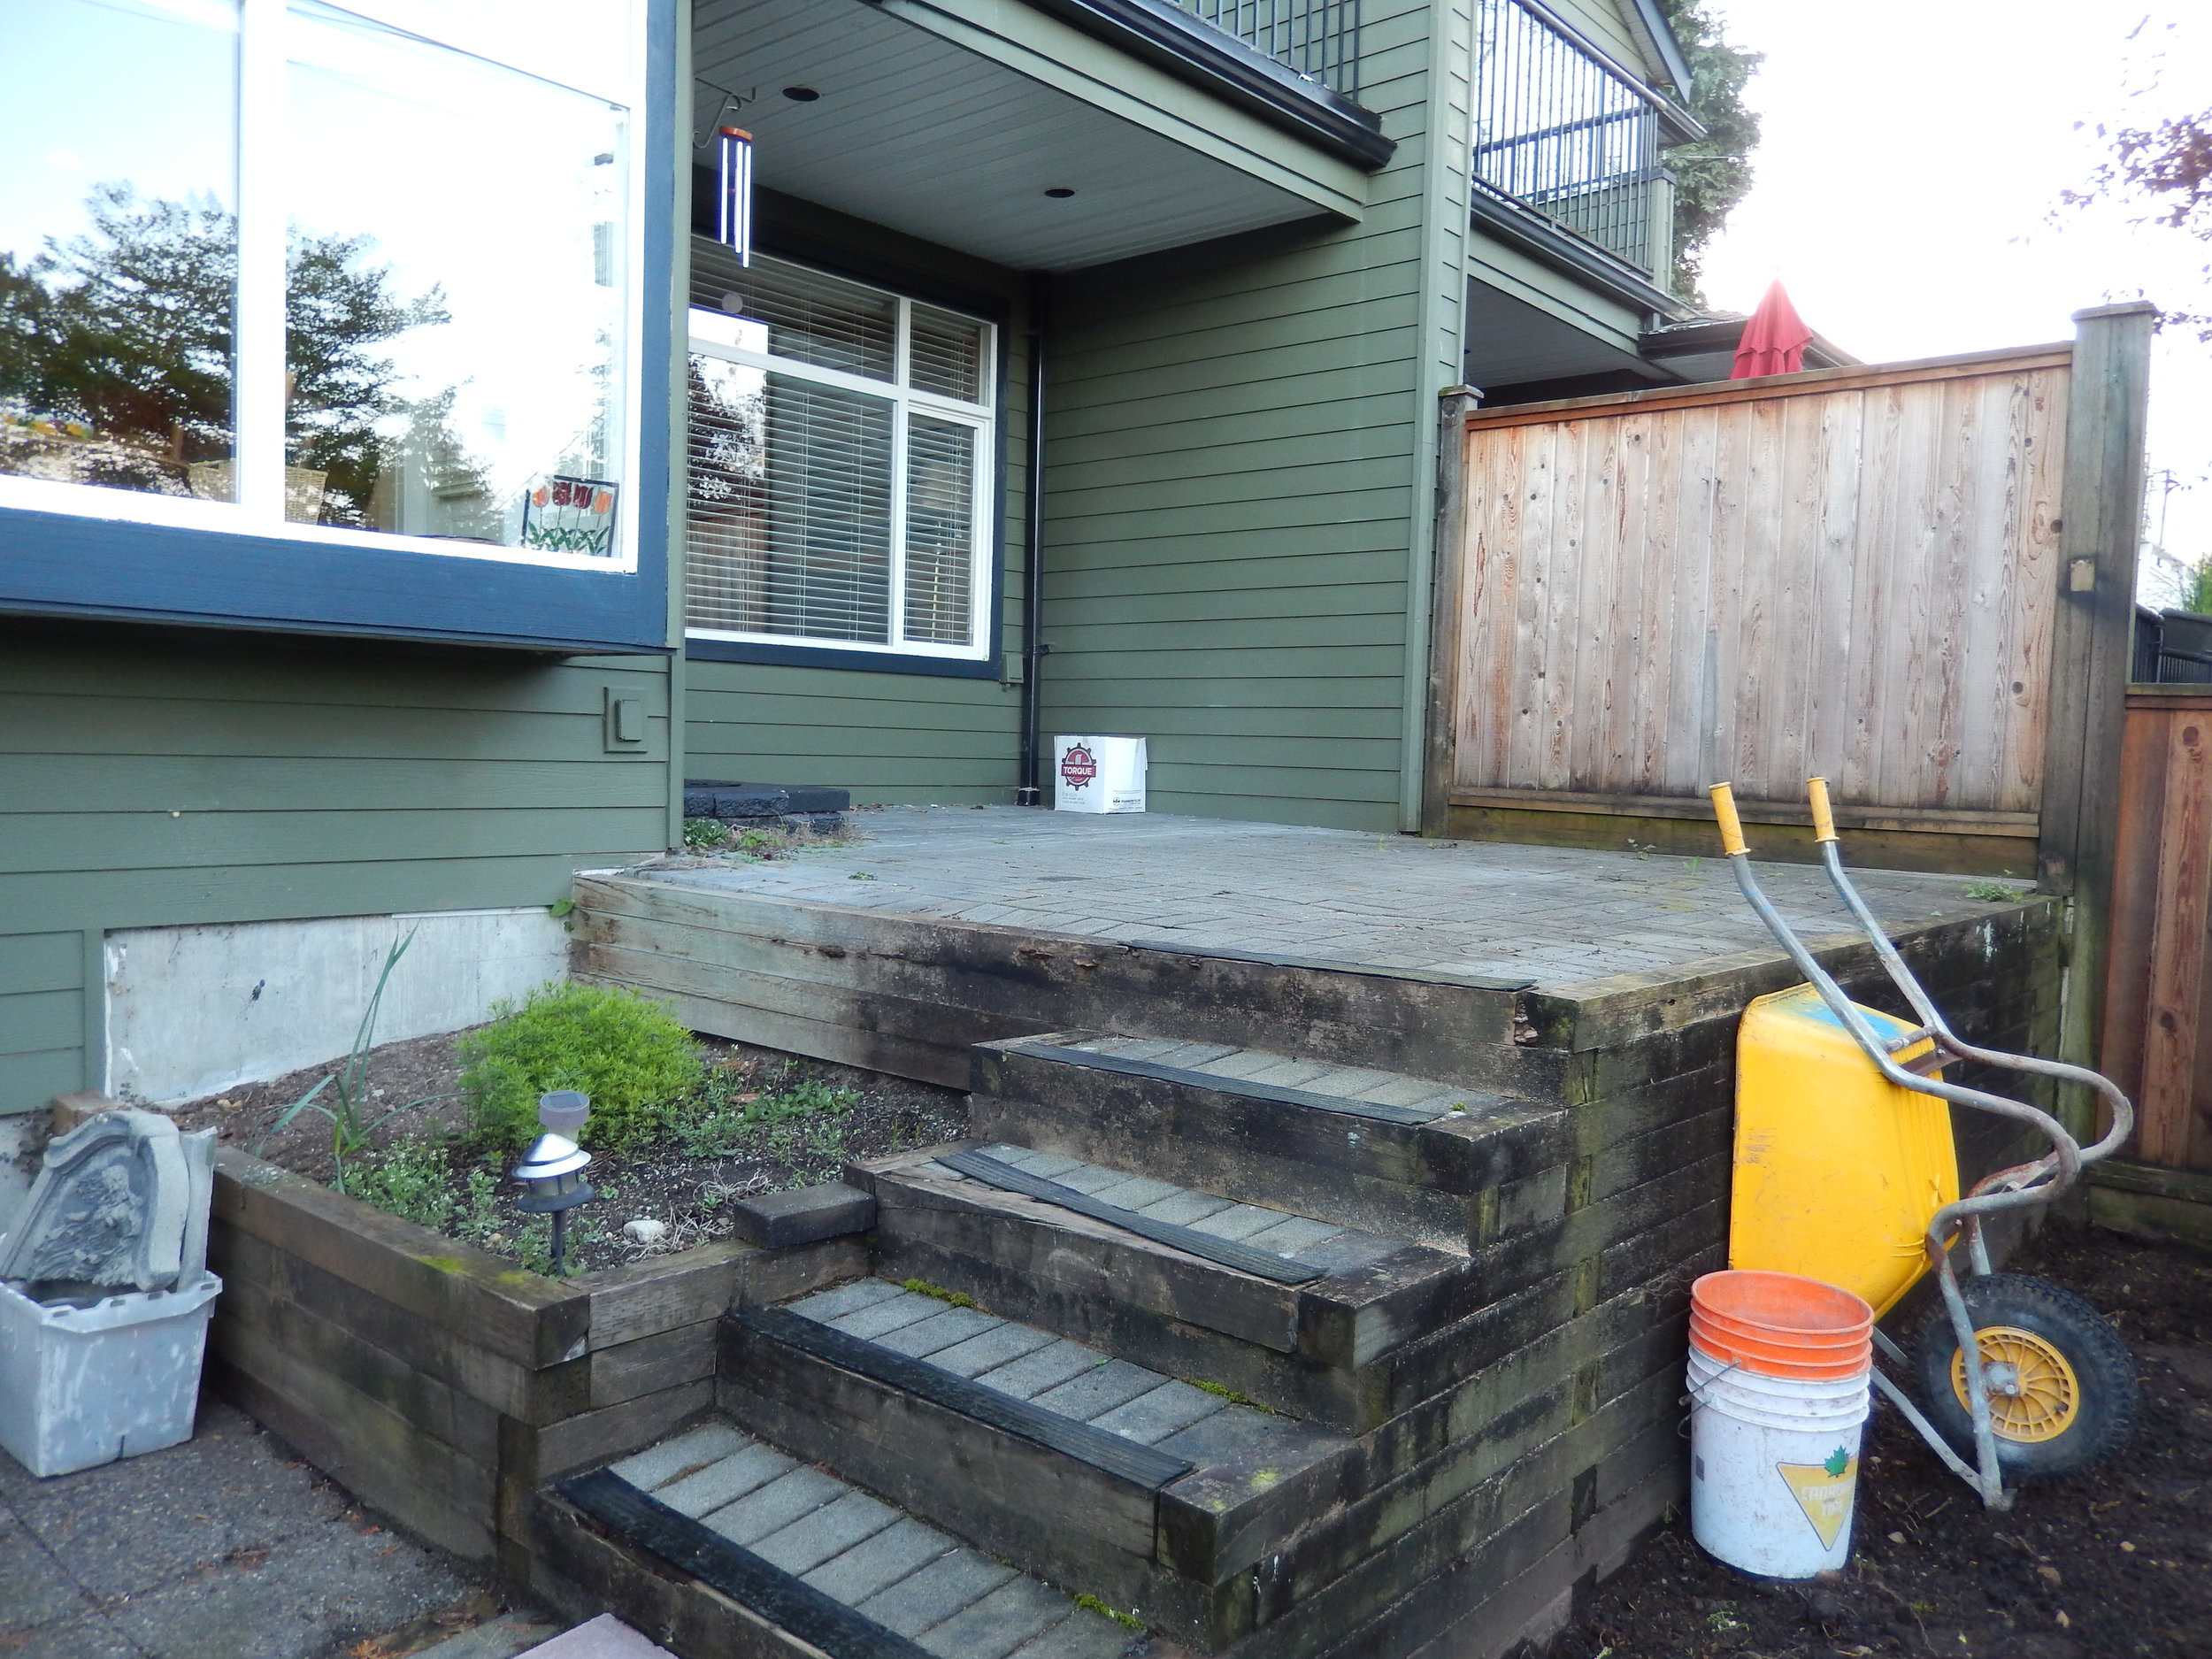 Previous patio was brick. It had started to loose shape and the wood was rotting.